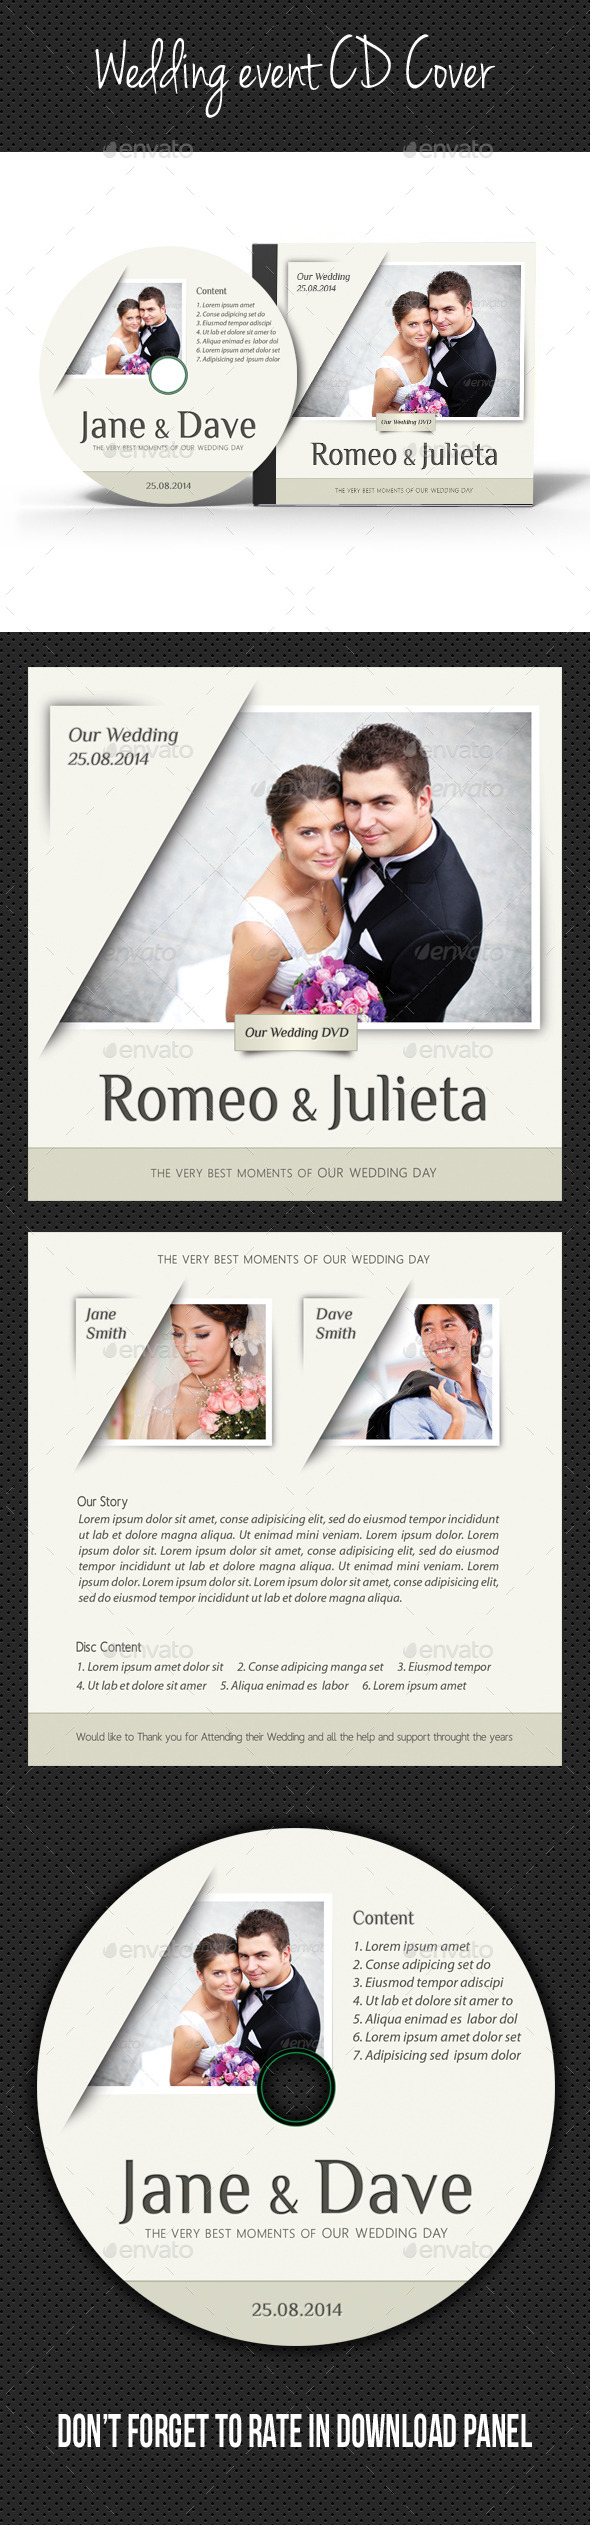 GraphicRiver Wedding Event CD Cover V04 9100109